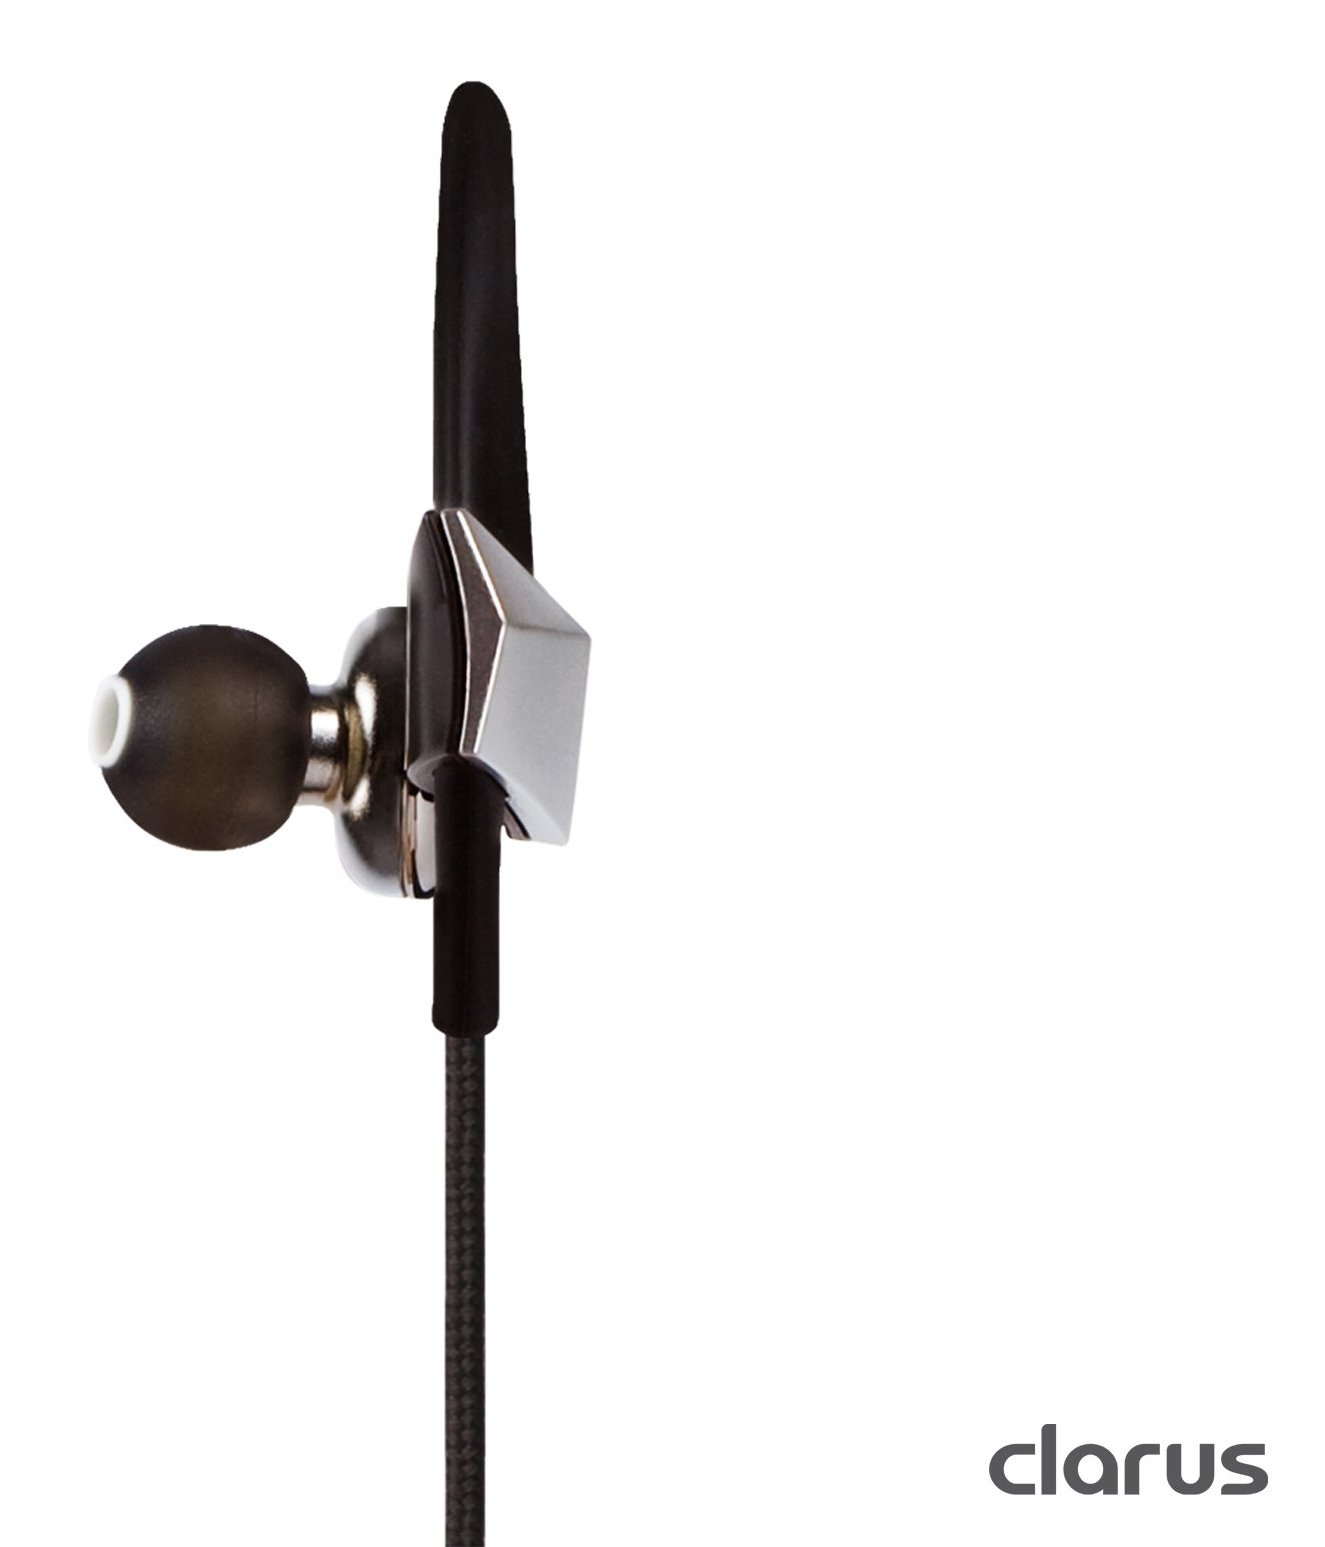 Moshi Clarus Premium Dual Driver In-Ear Headphones with Microphone, Silver by Moshi (Image #5)